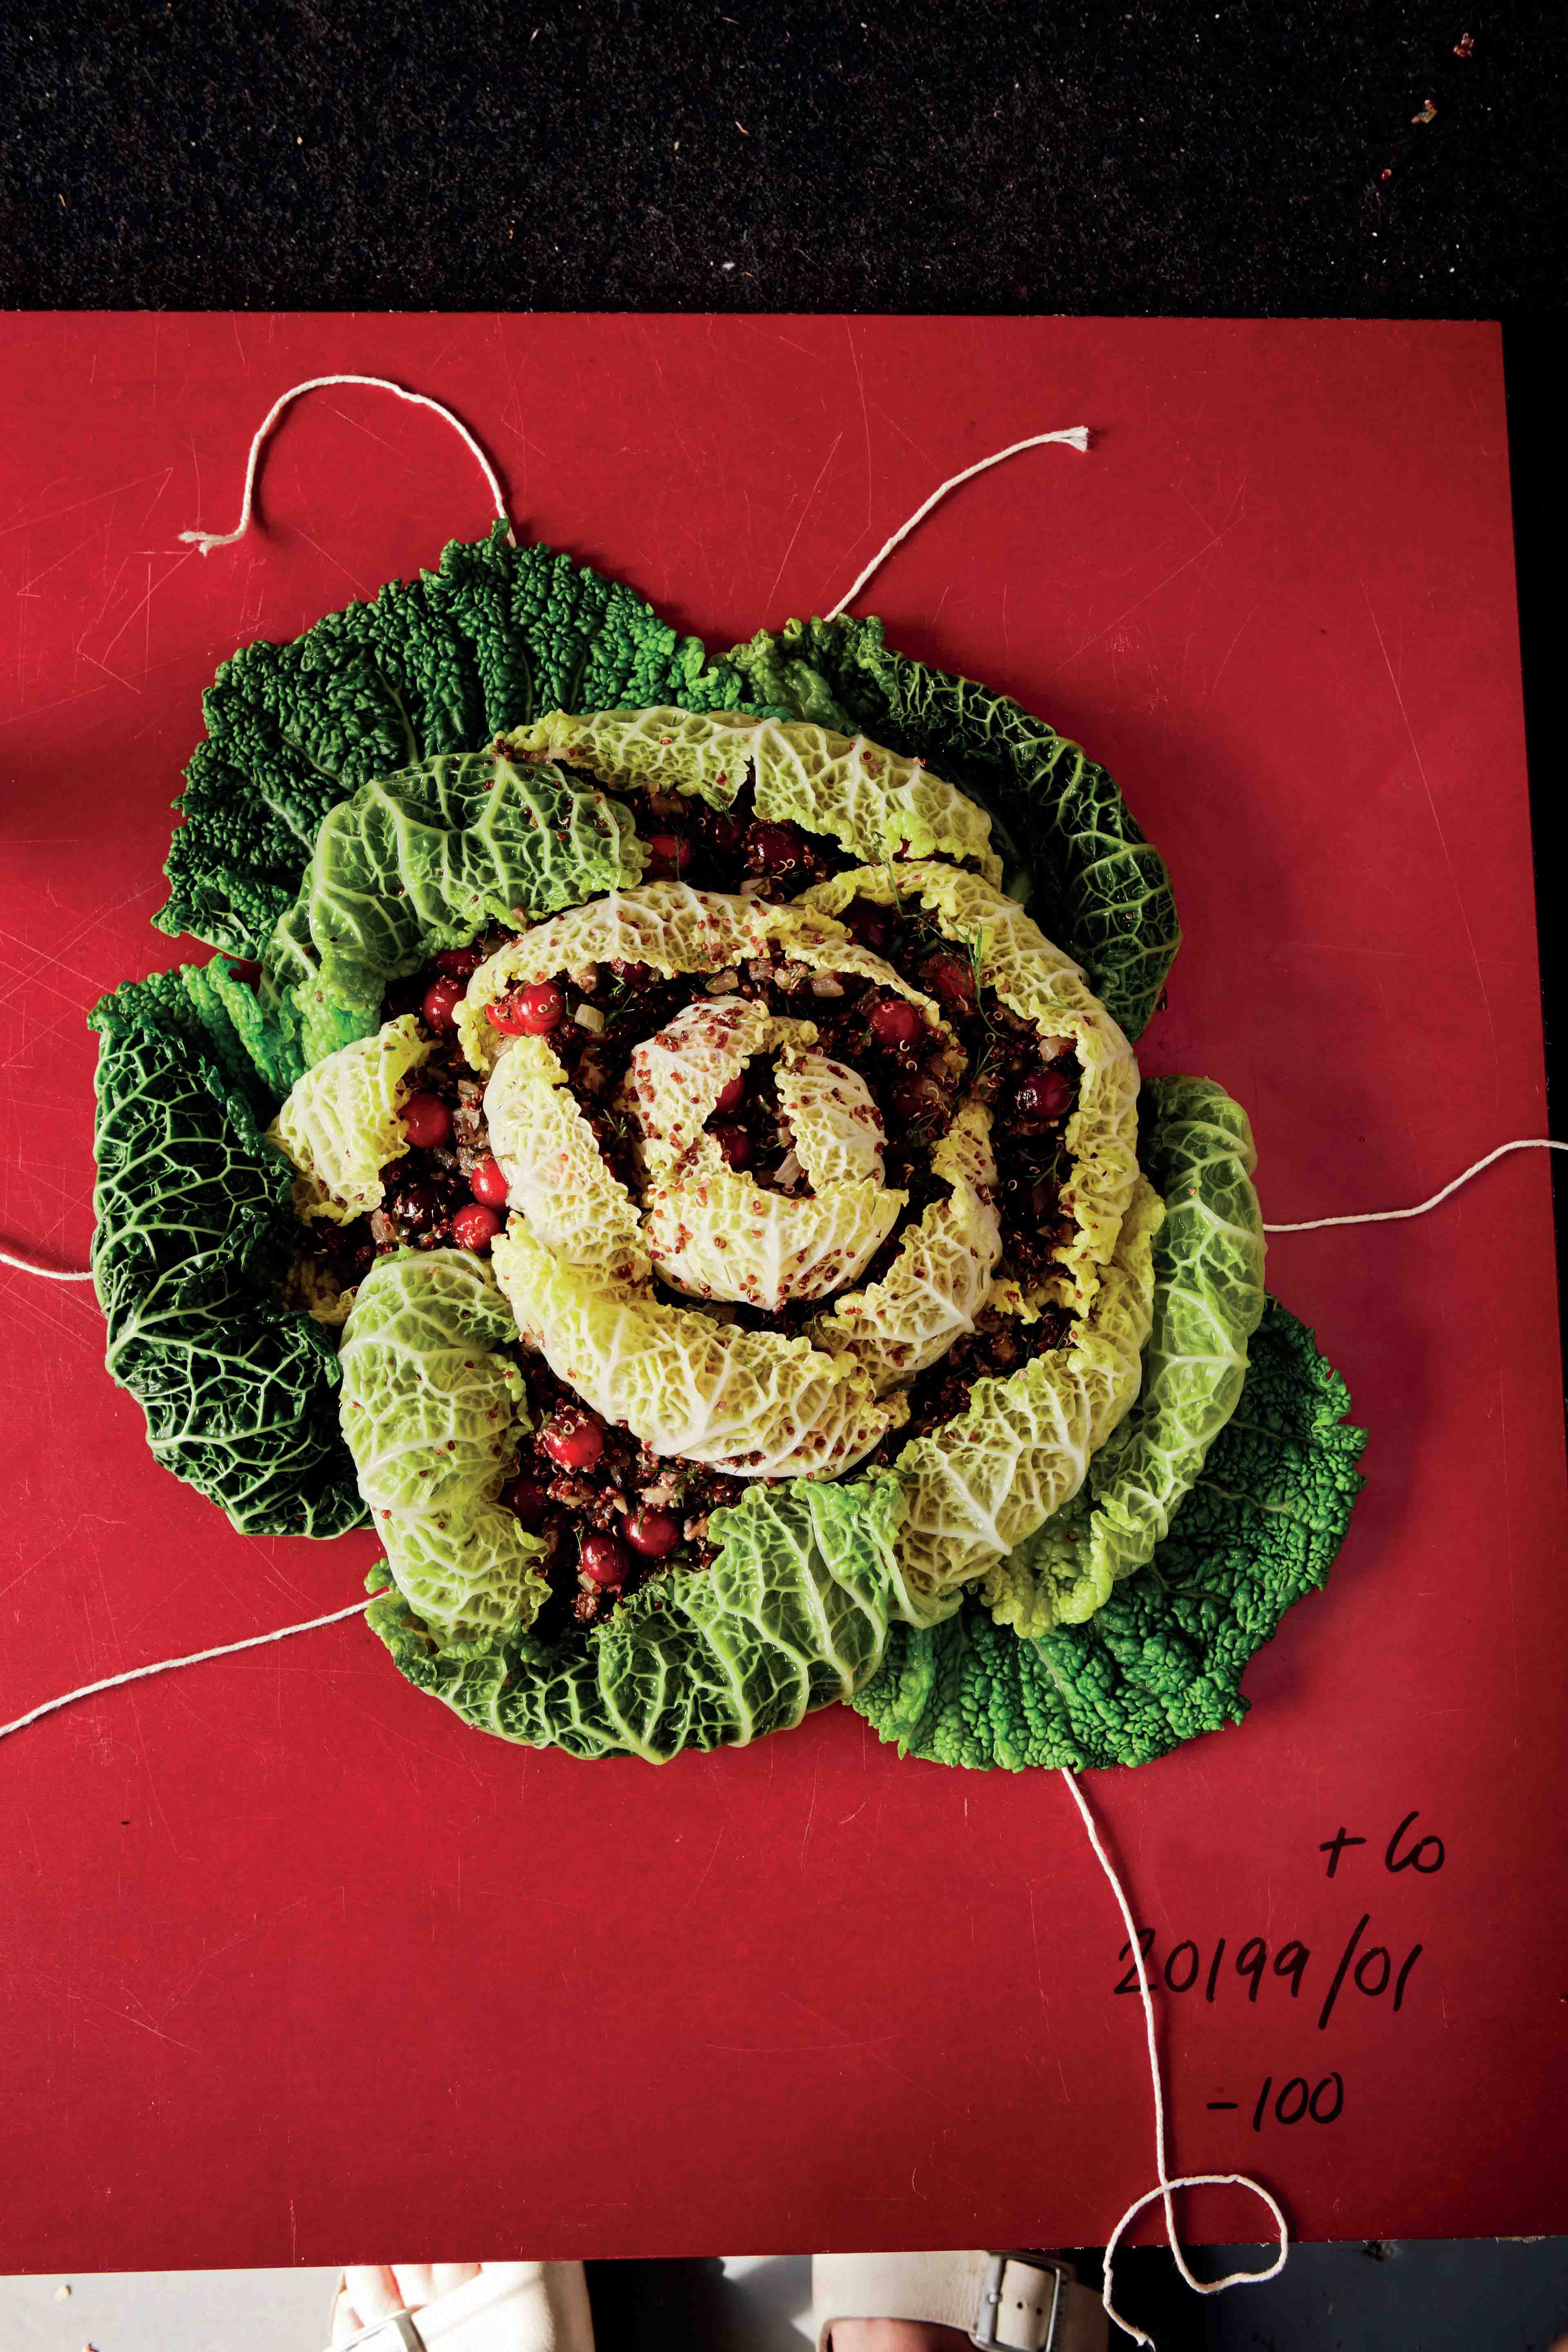 Spectacular Russian stuffed cabbage rose